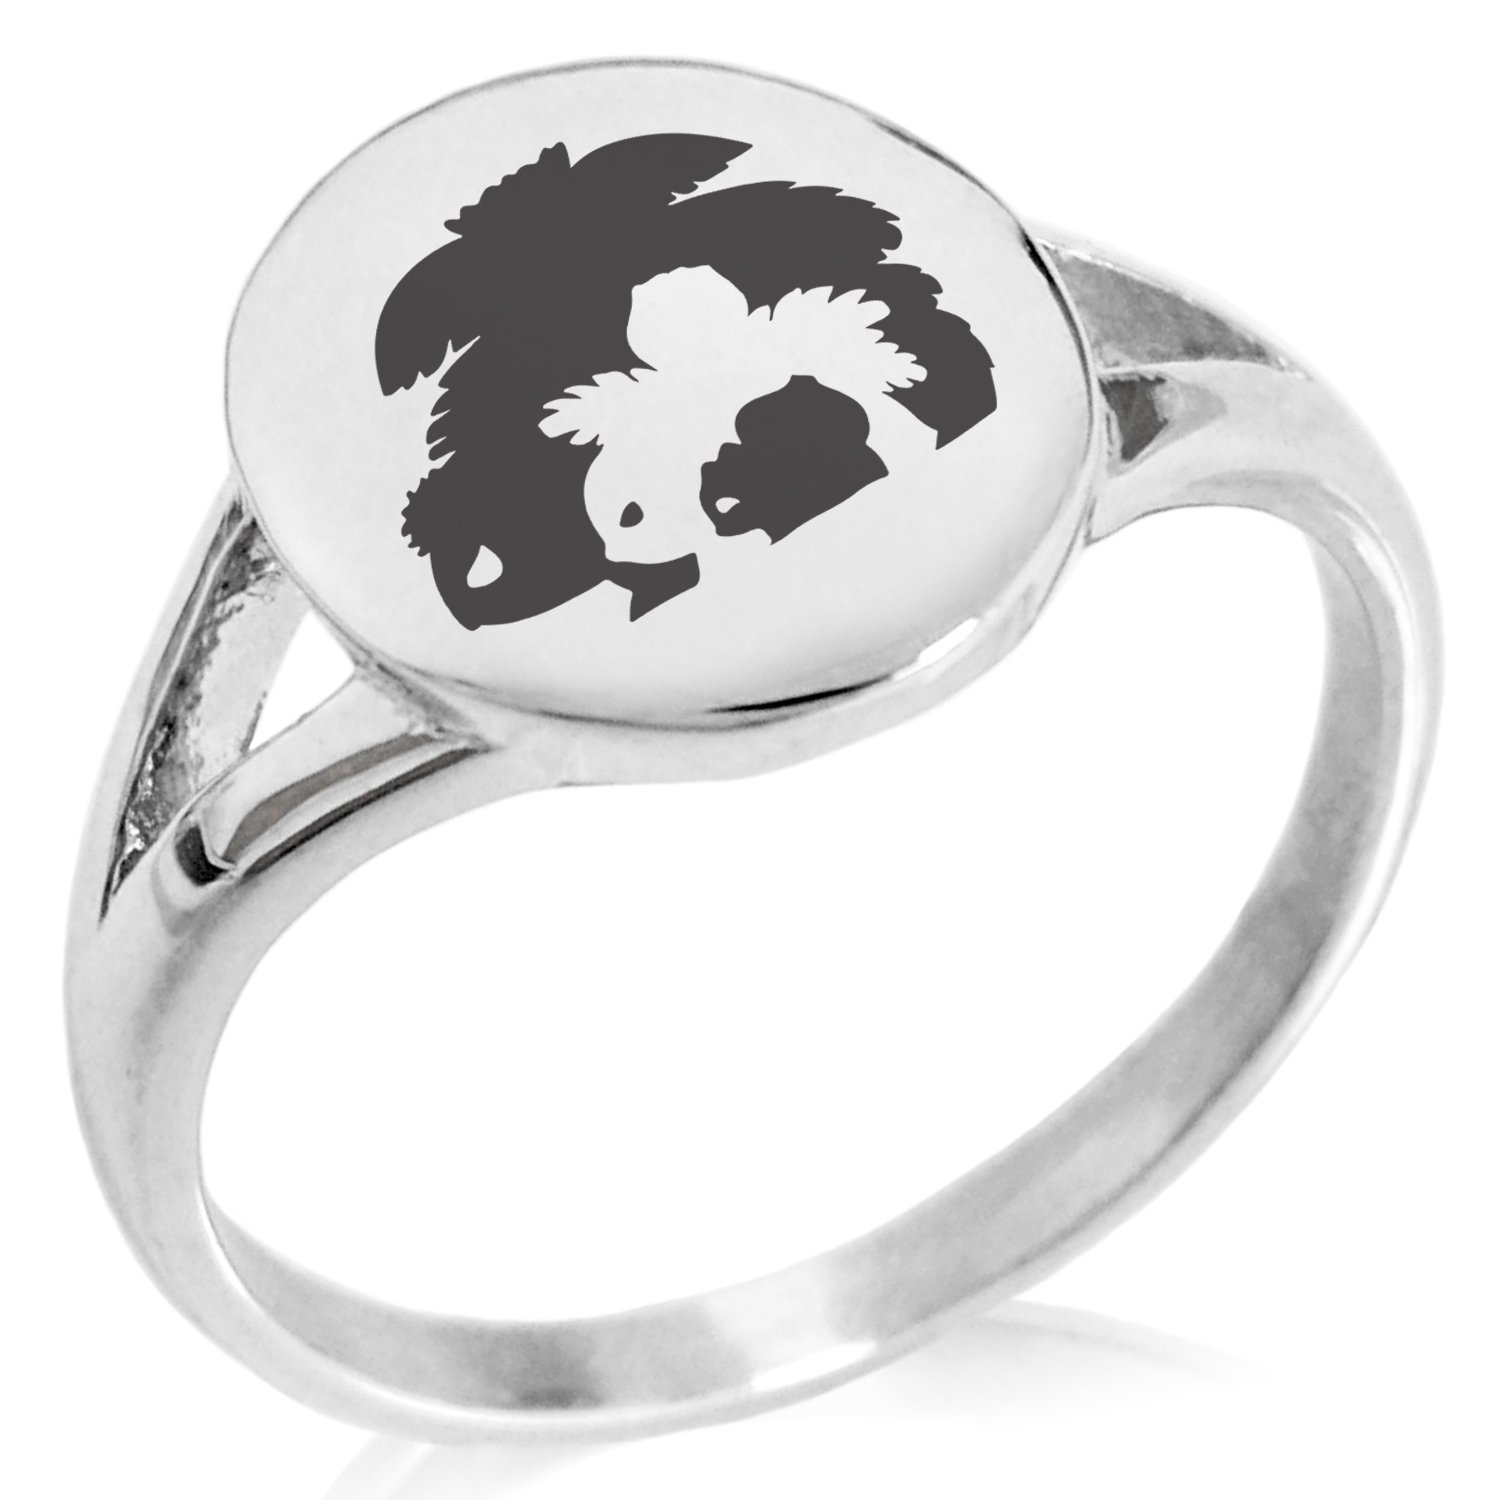 Tioneer Stainless Steel 1st Gen Bulbasaur Ivysaur Venusaur Pokemon Minimalist Oval Top Polished Statement Ring, Size 5 by Tioneer (Image #1)